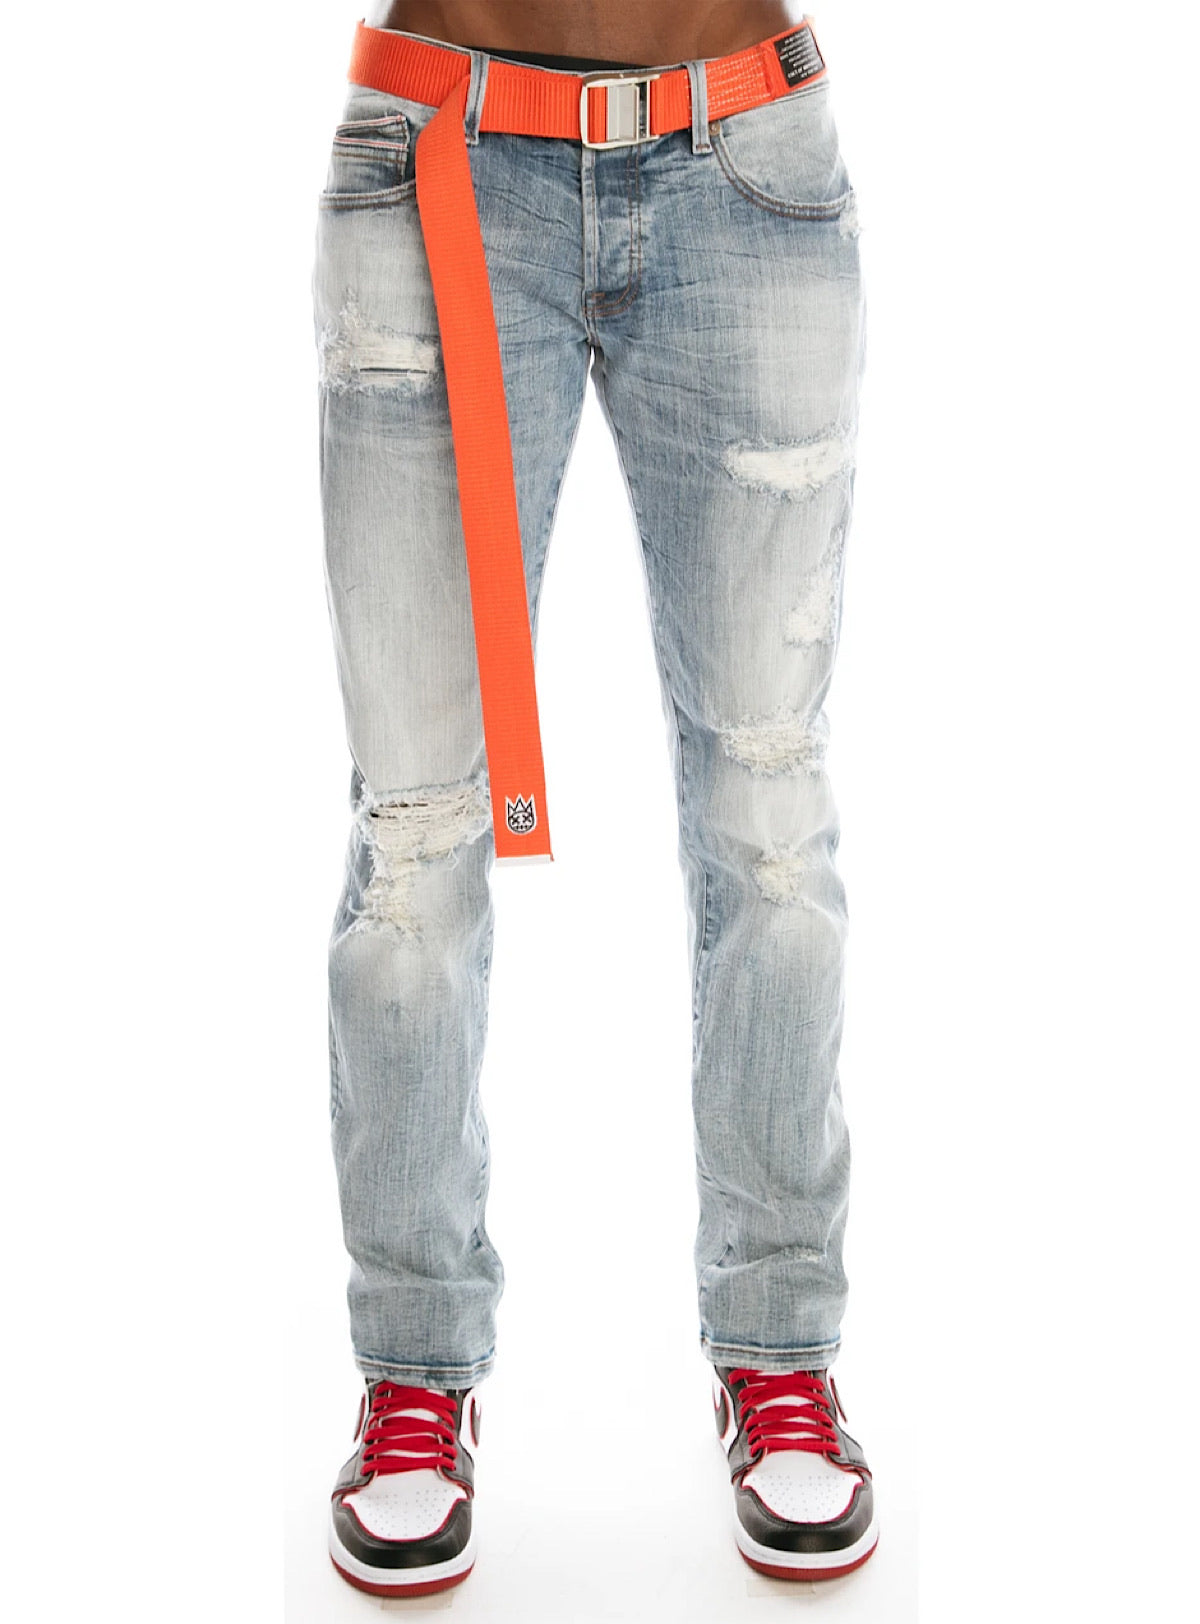 Cult of Individuality Jeans - Rocker Slim - Drifter - 620B9-RS03R